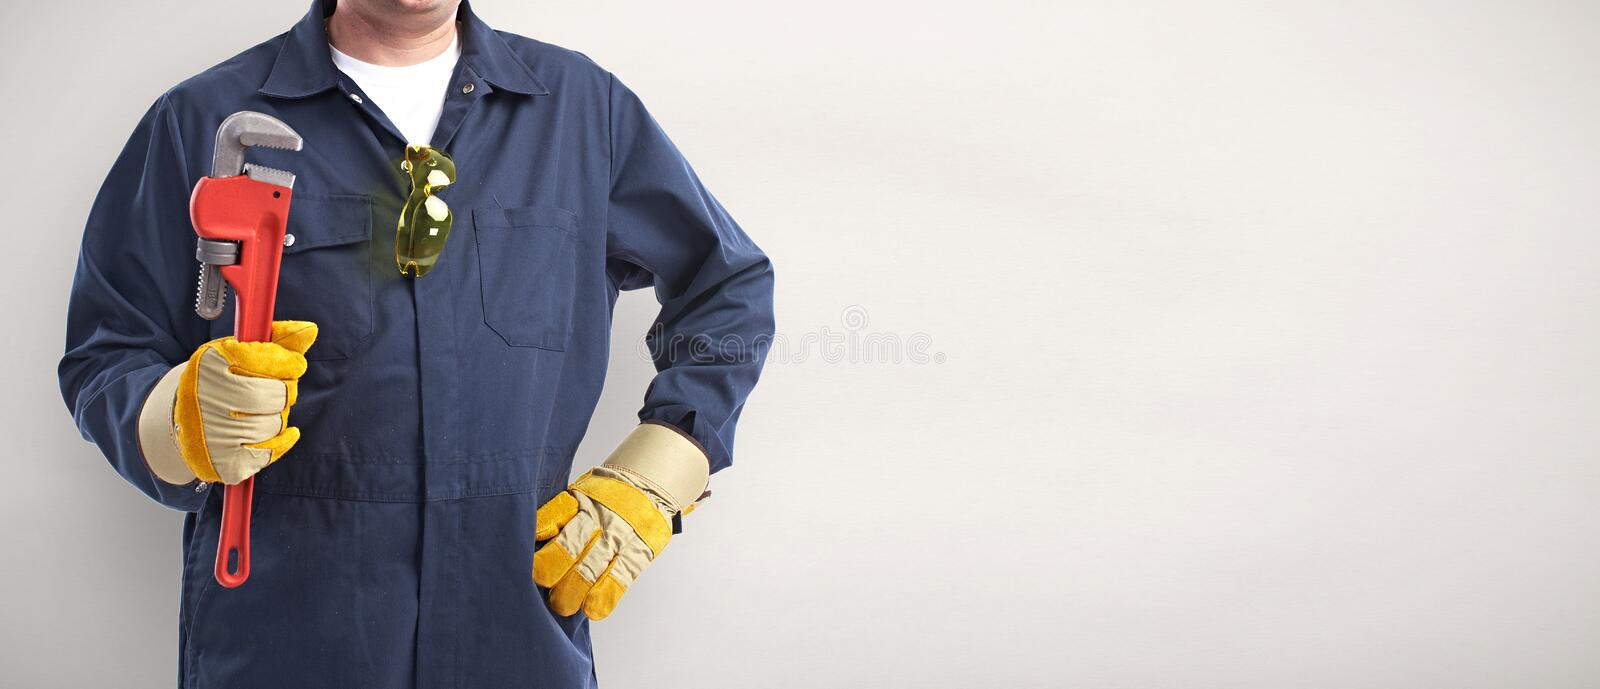 Plumber hand with wrench. stock image